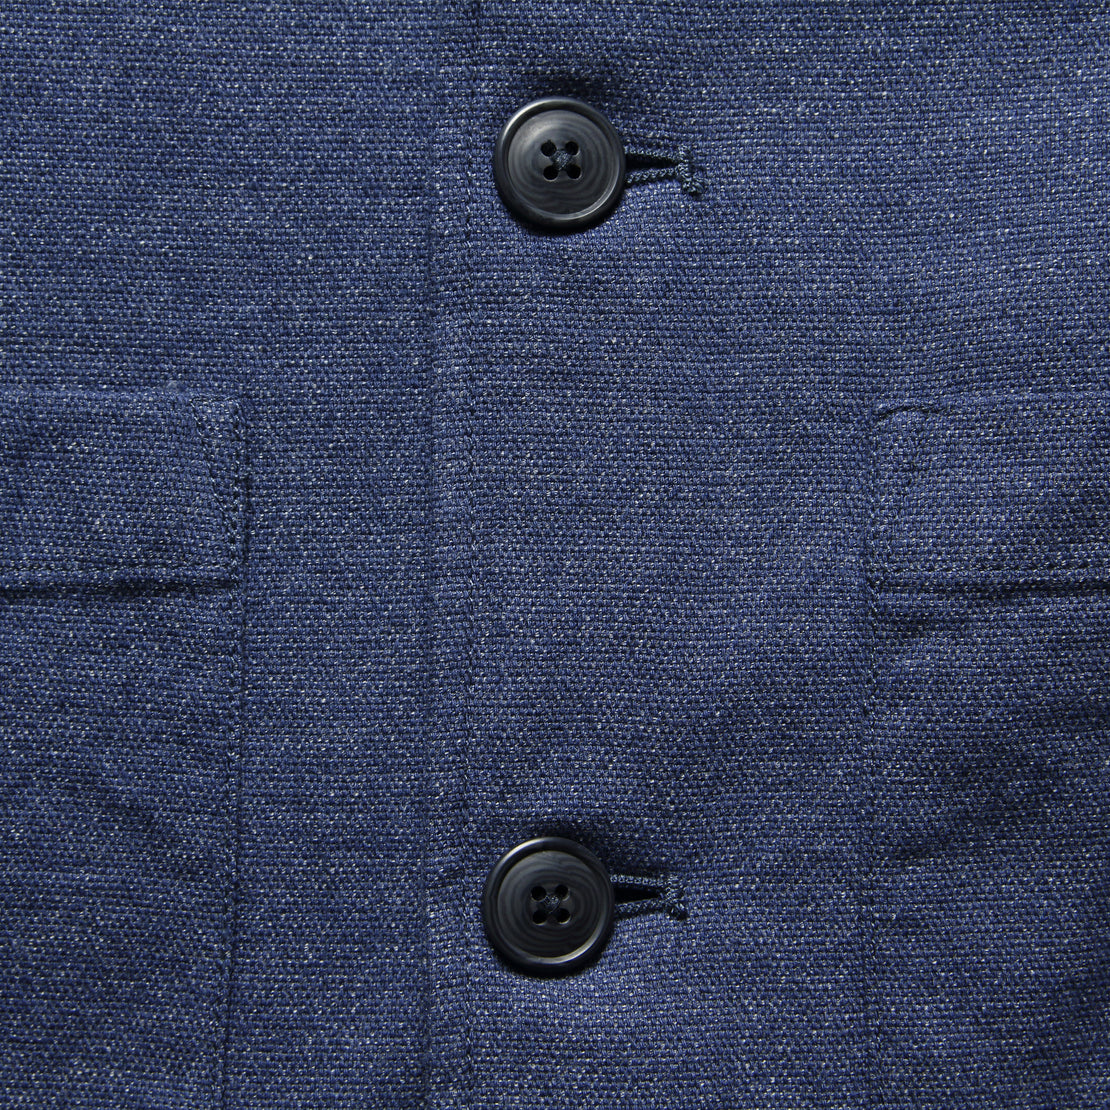 Poindexter Sportcoat - Navy Heather